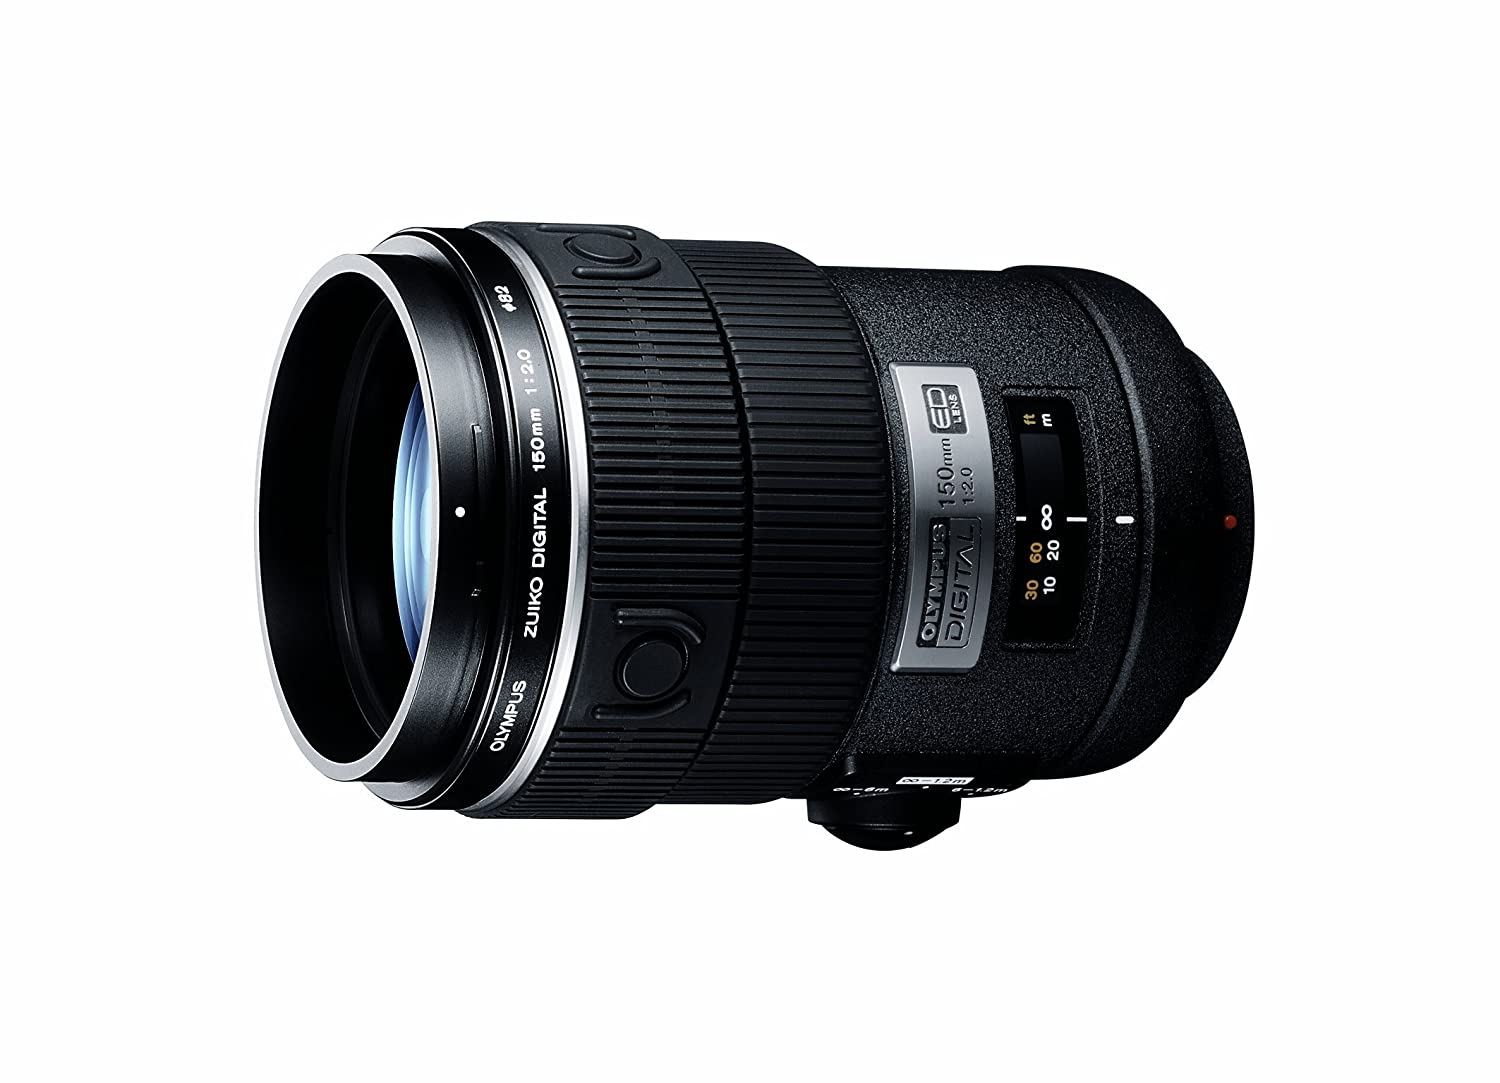 Olympus Zuiko DIGITAL ED - Telephoto lens - 150 mm - f/2.0 - Four Thirds - for Olympus E-1, E-300, EVOLT E-300   B0001WE6UC